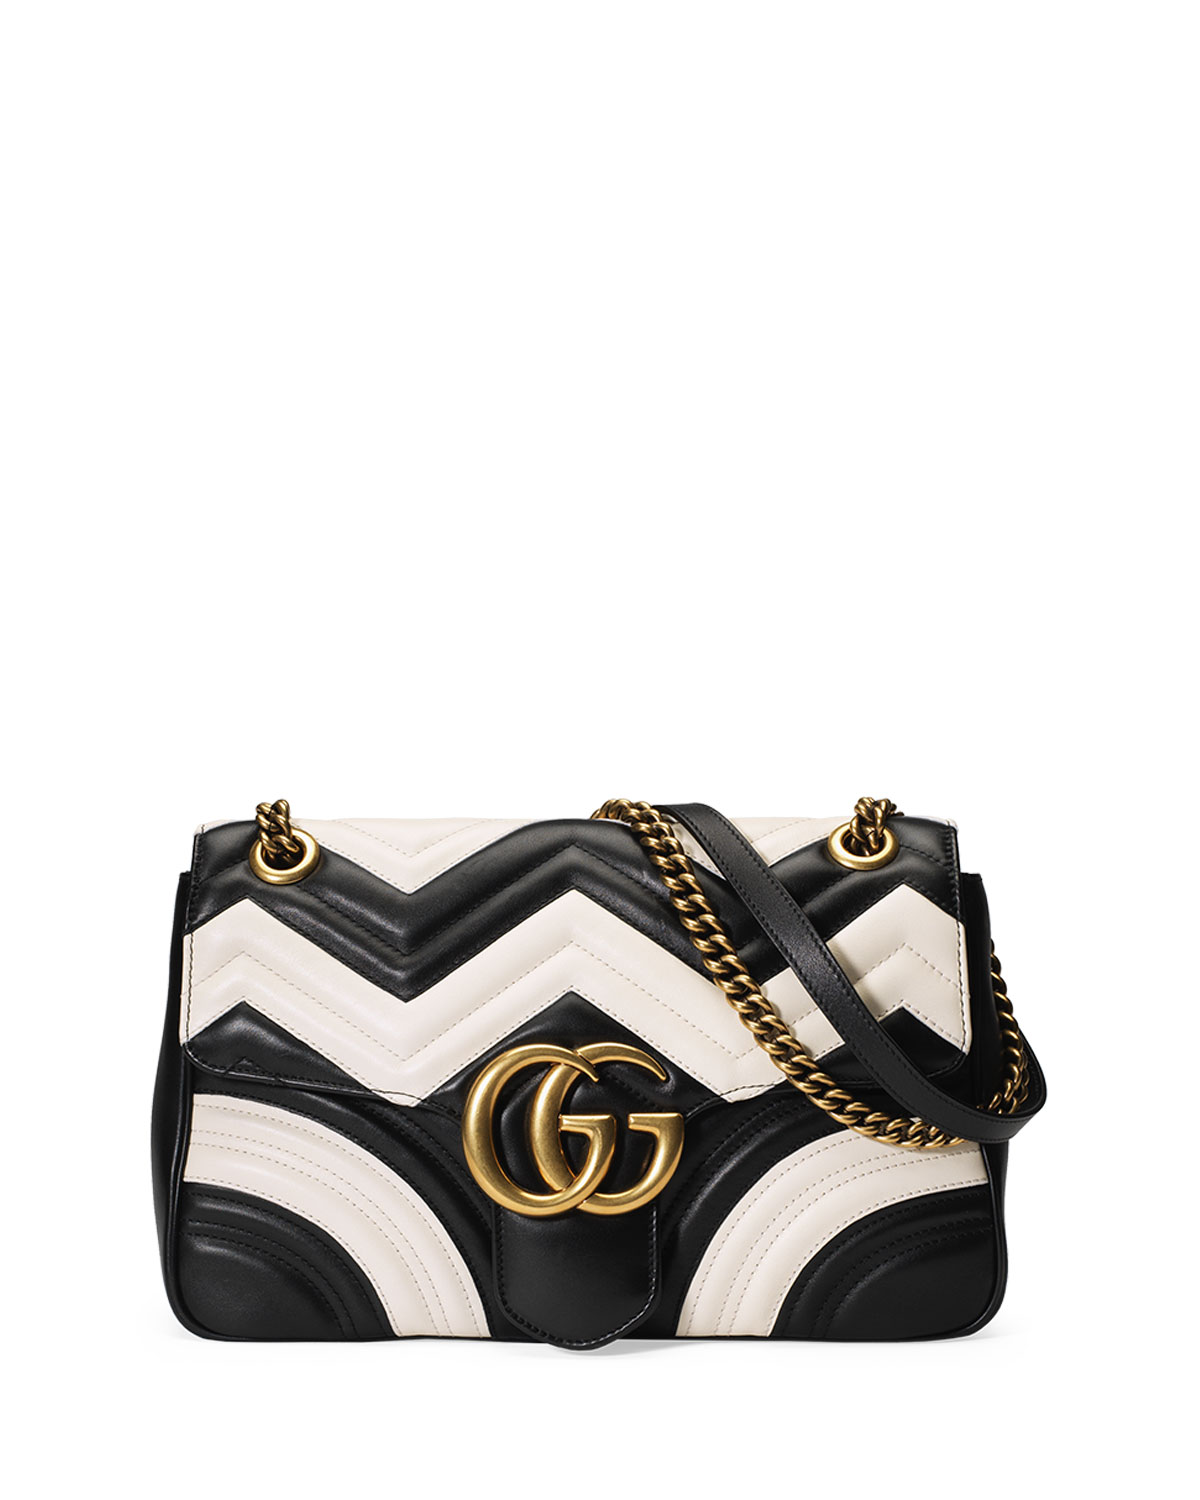 511a20df51fe3f Gucci GG Marmont Chevron Shoulder Bag, Black/White | Neiman Marcus